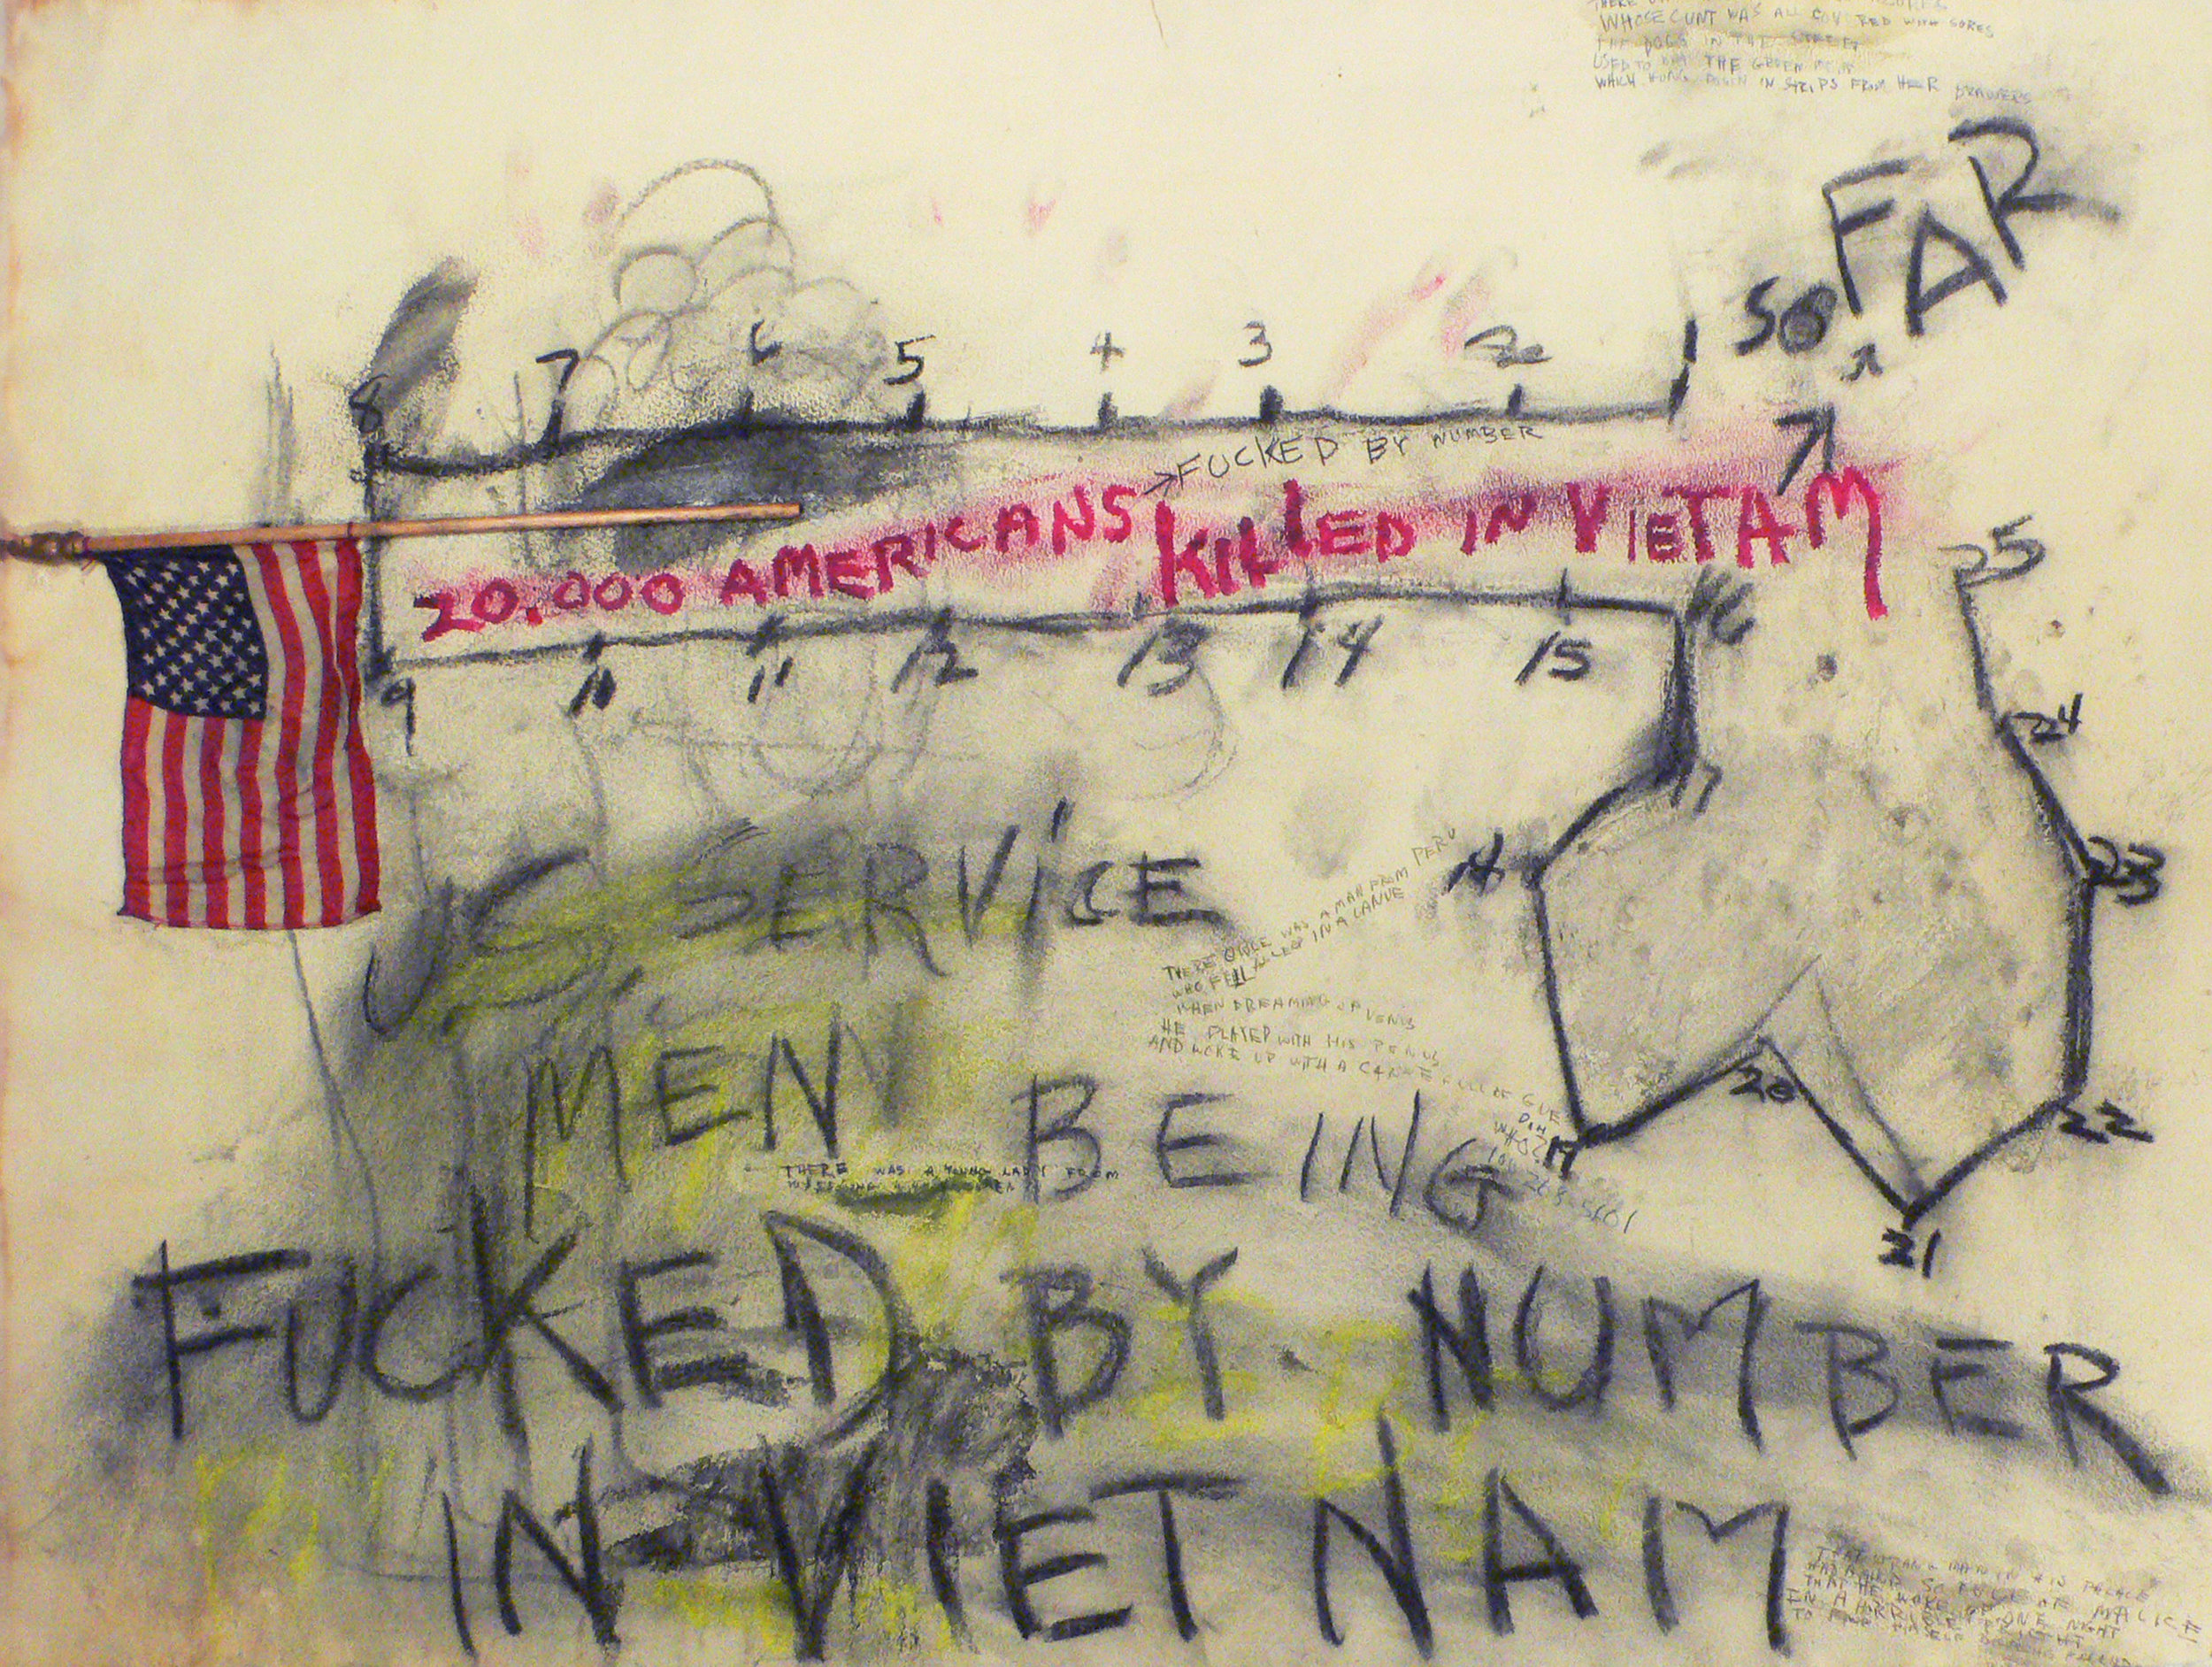 Fucked By Number 1966 charcoal & mixed media on paper 22x30 inches 2.jpg